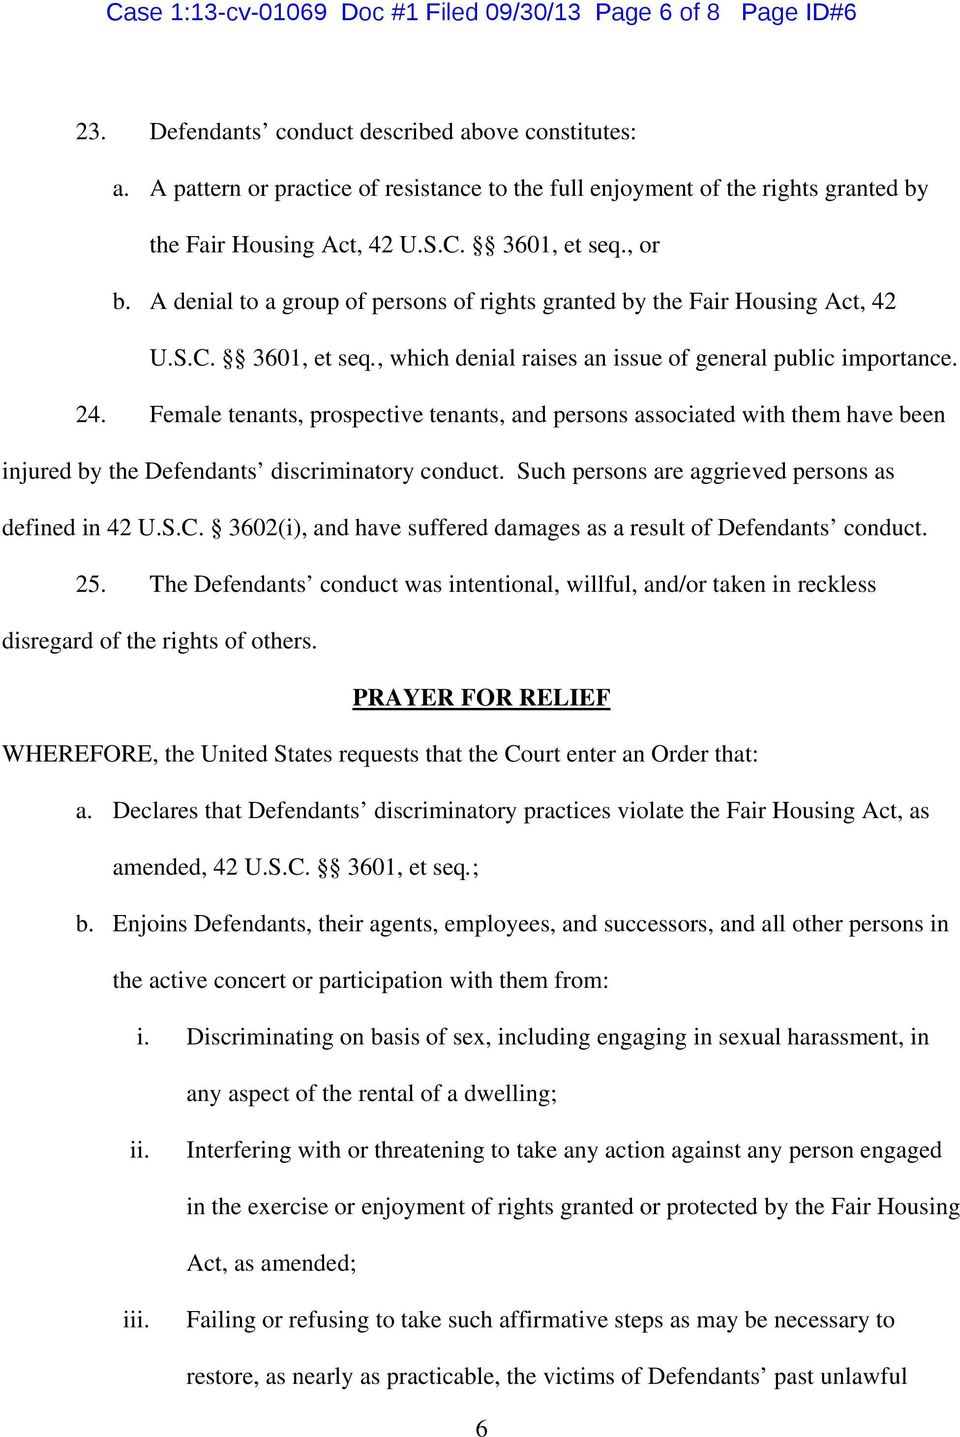 A denial to a group of persons of rights granted by the Fair Housing Act, 42 U.S.C. 3601, et seq., which denial raises an issue of general public importance. 24.